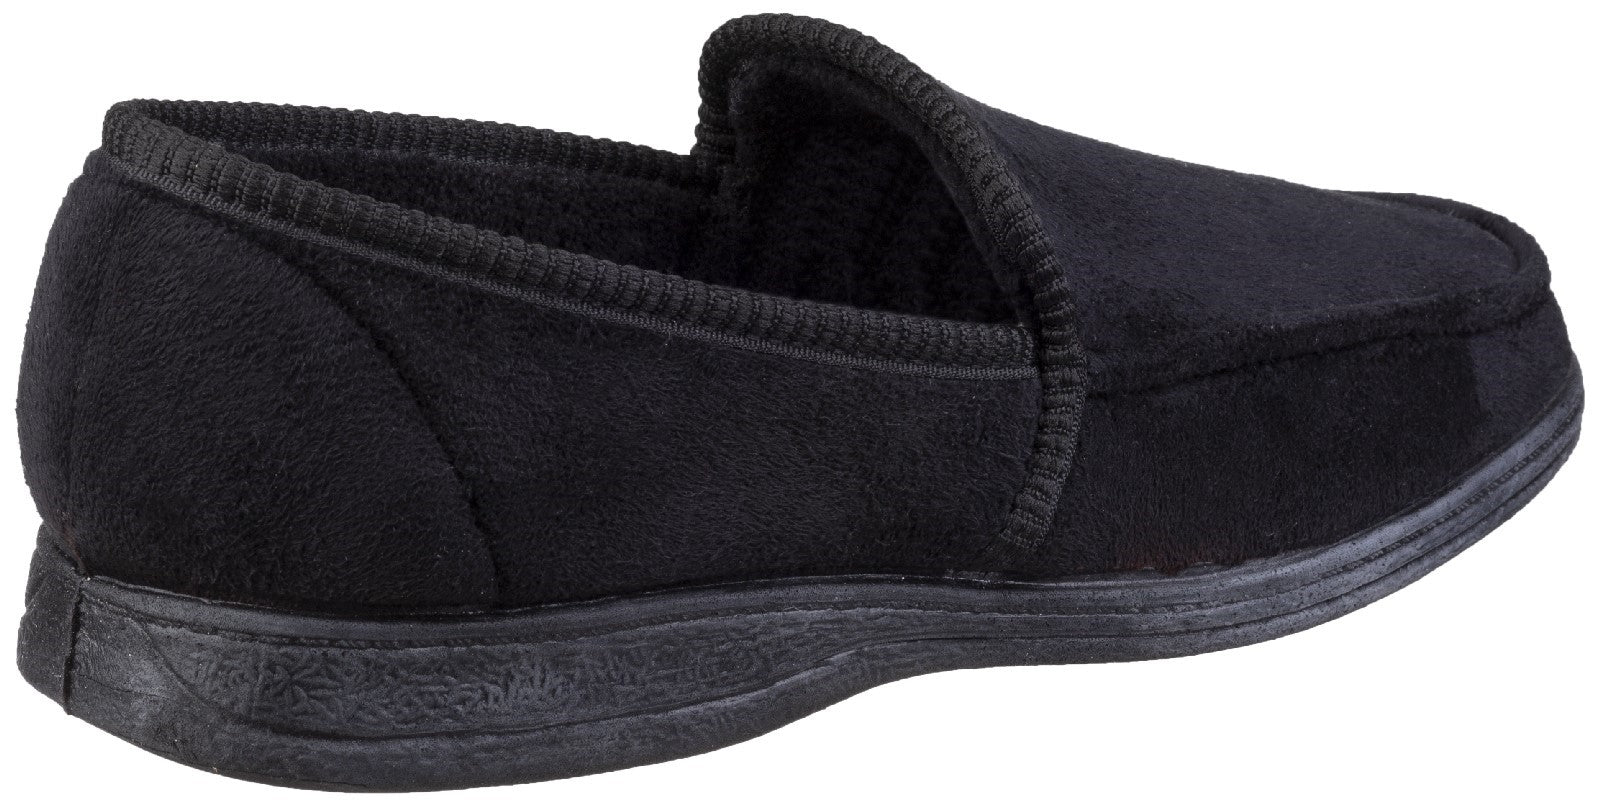 Fleet & Foster Men's Dakis Slip On Slipper Brown 27209-45757